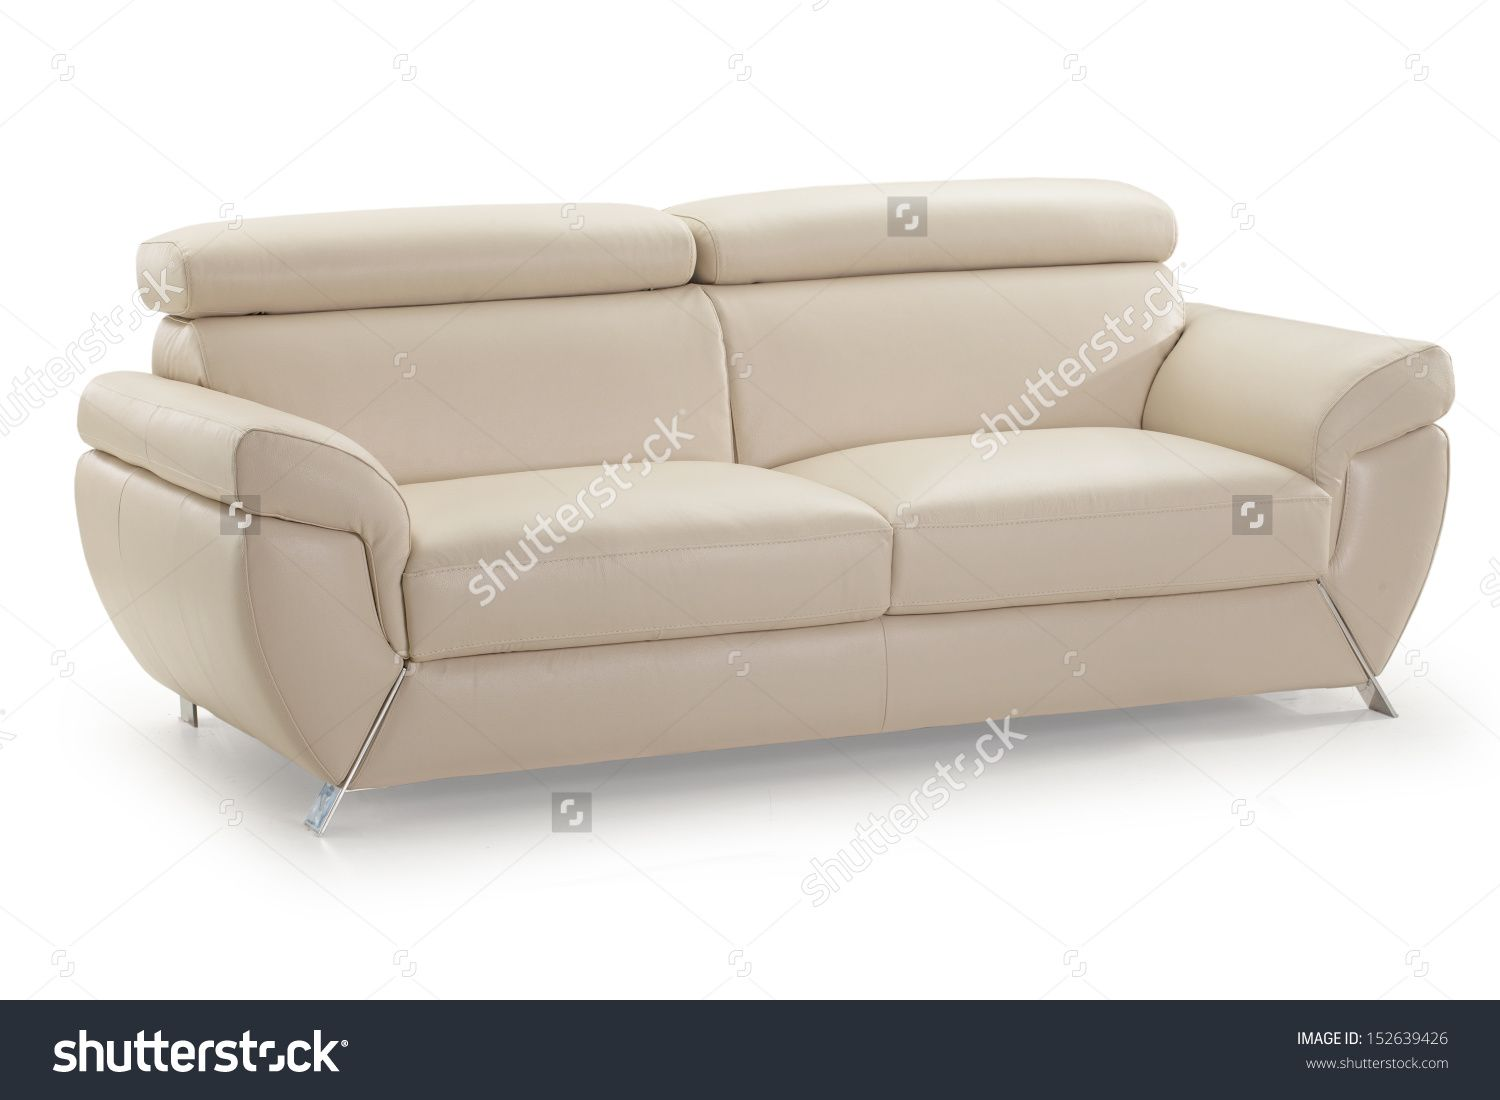 Pin by Sofacouchs on Office Sofa in 2019 | White leather sofas ...